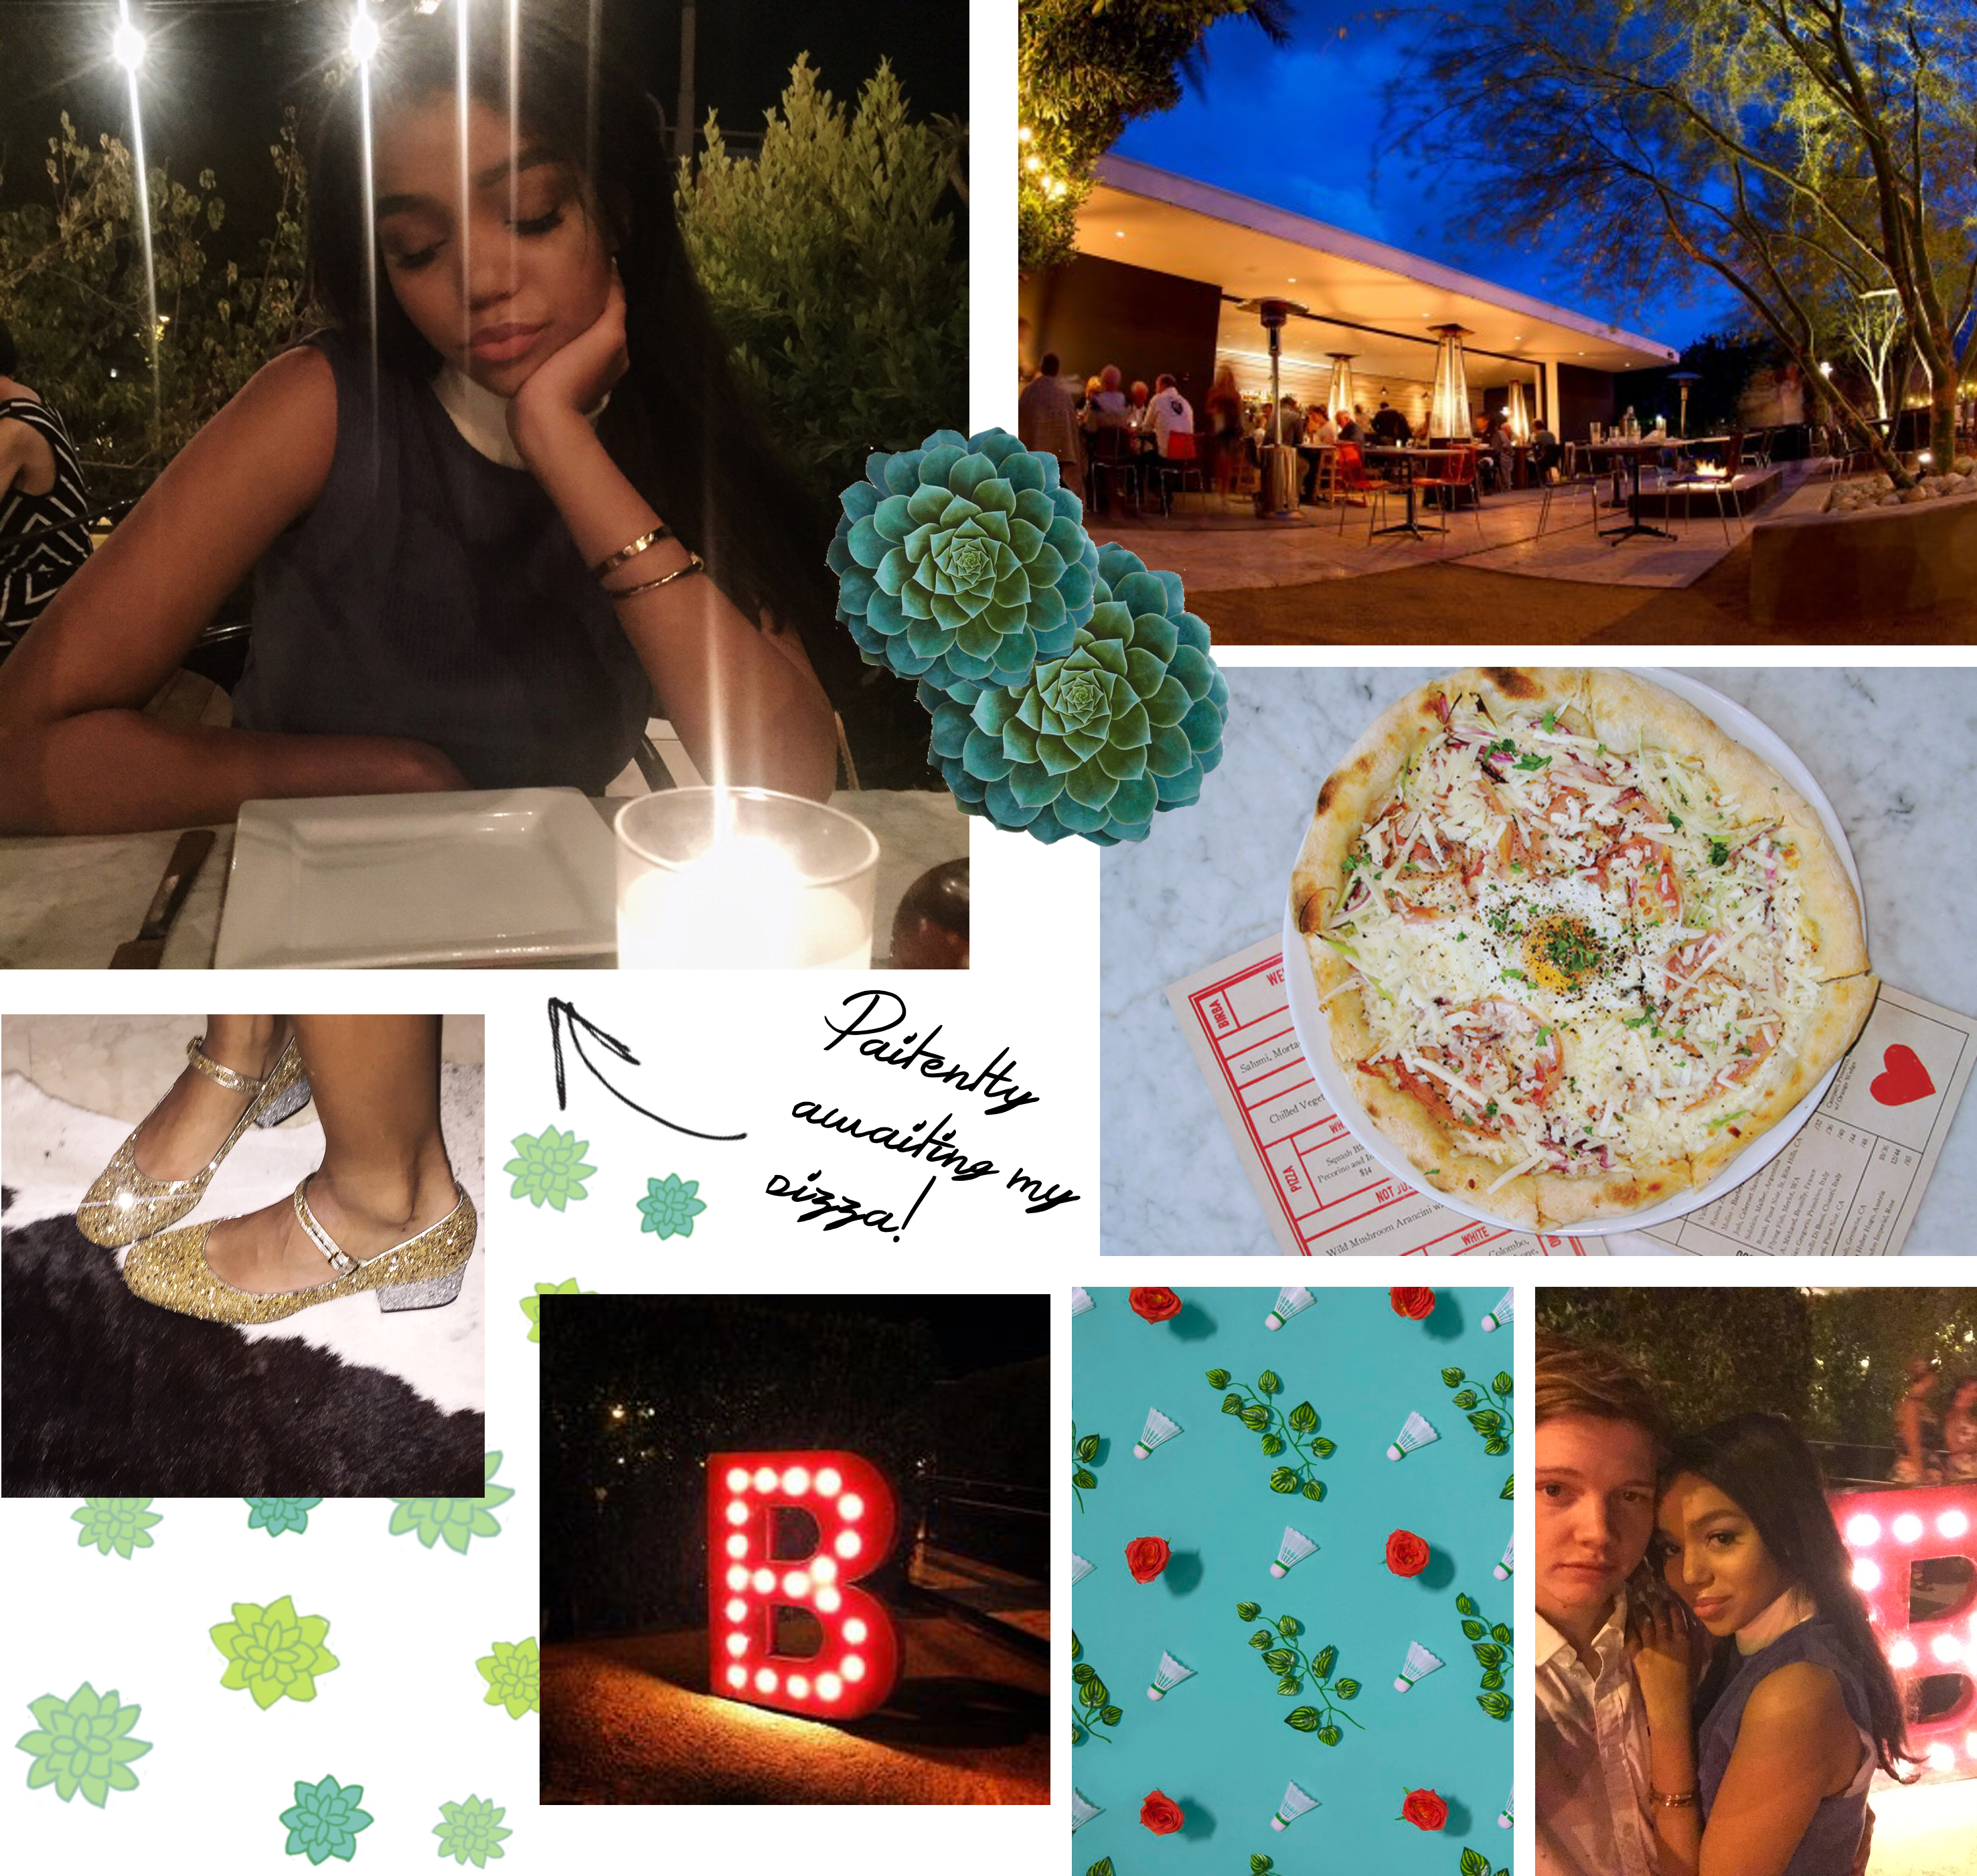 Palm Springs City Guide, Birba Restaraunt: To Style, With Love